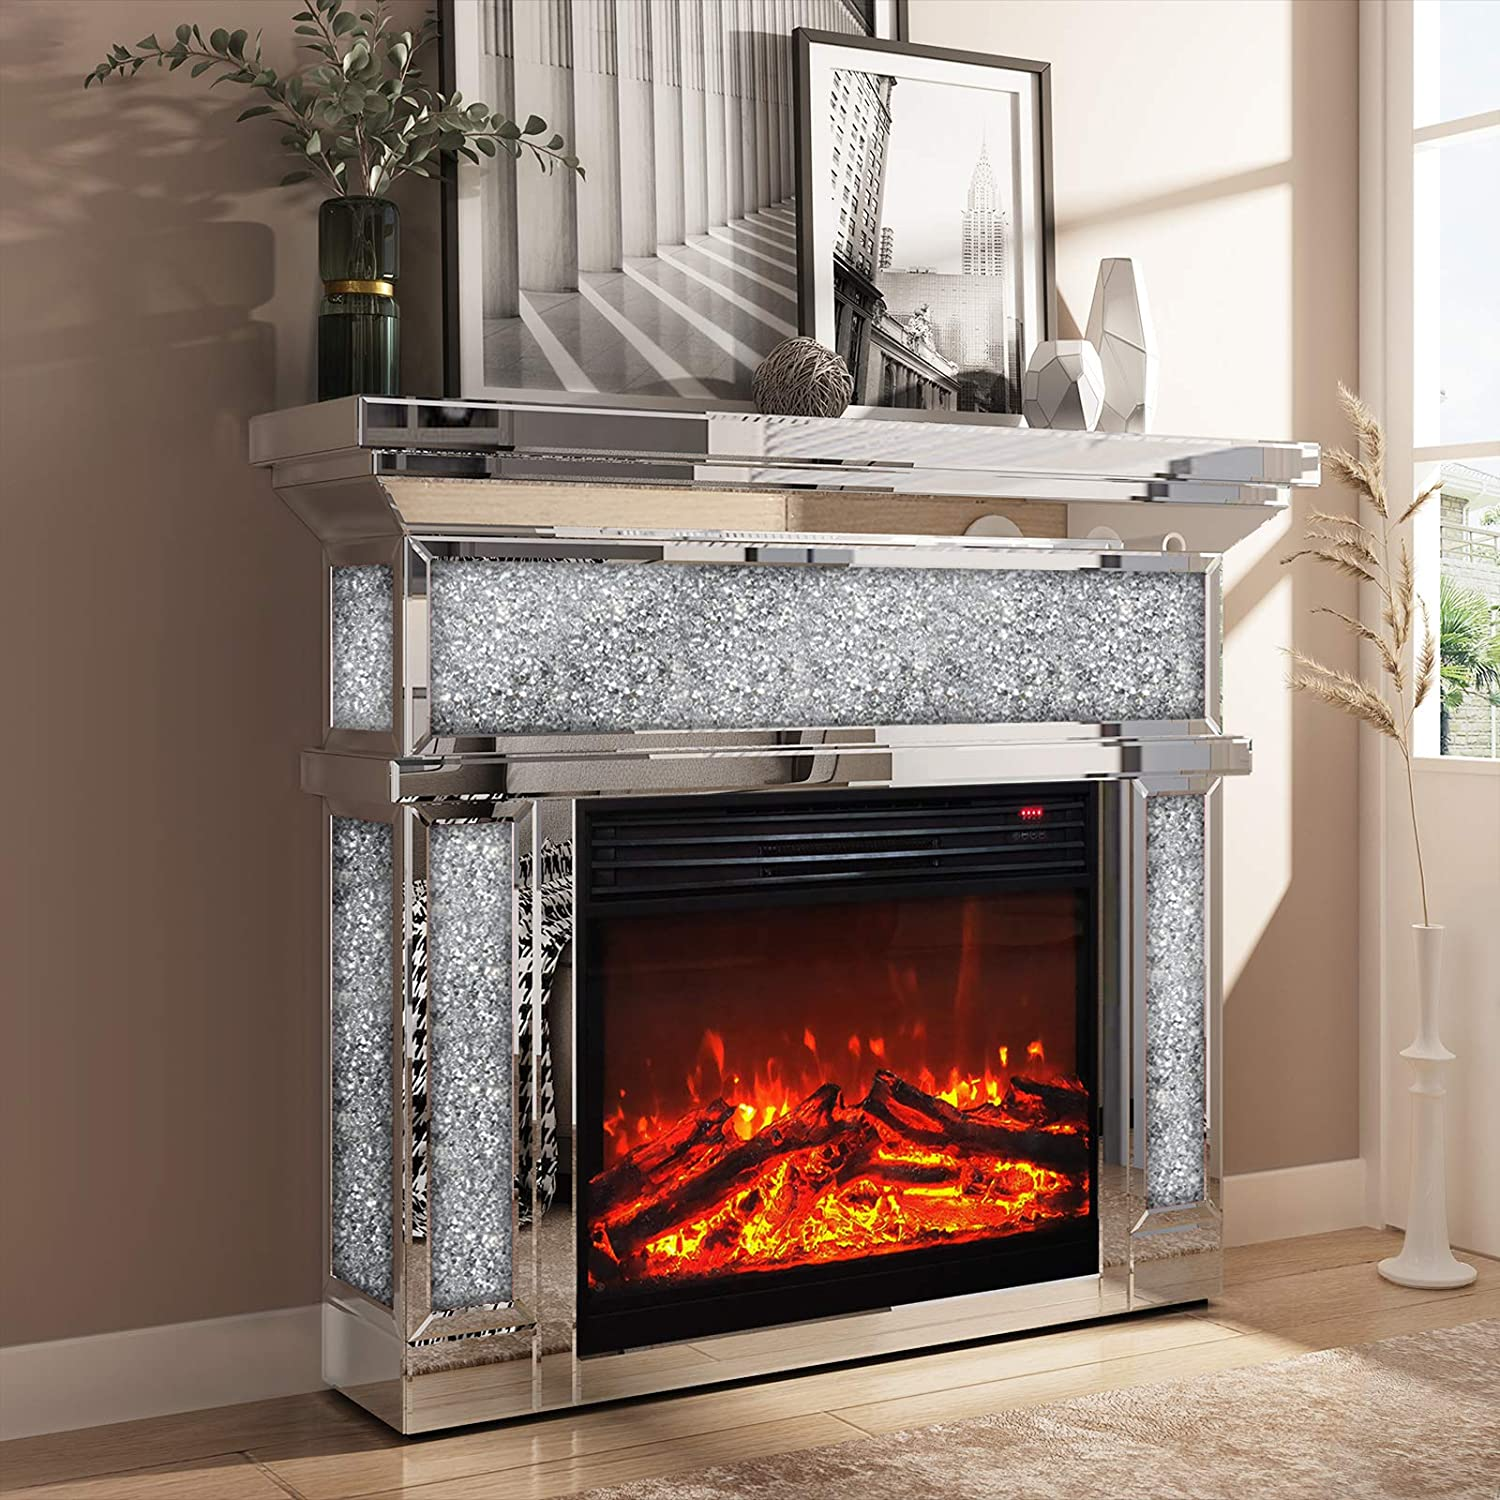 Enene Mirrored Electric Fireplace Mantel Freestanding Heater Firebox With Remote Control 3d Flame 750 1500w Furniture Decor